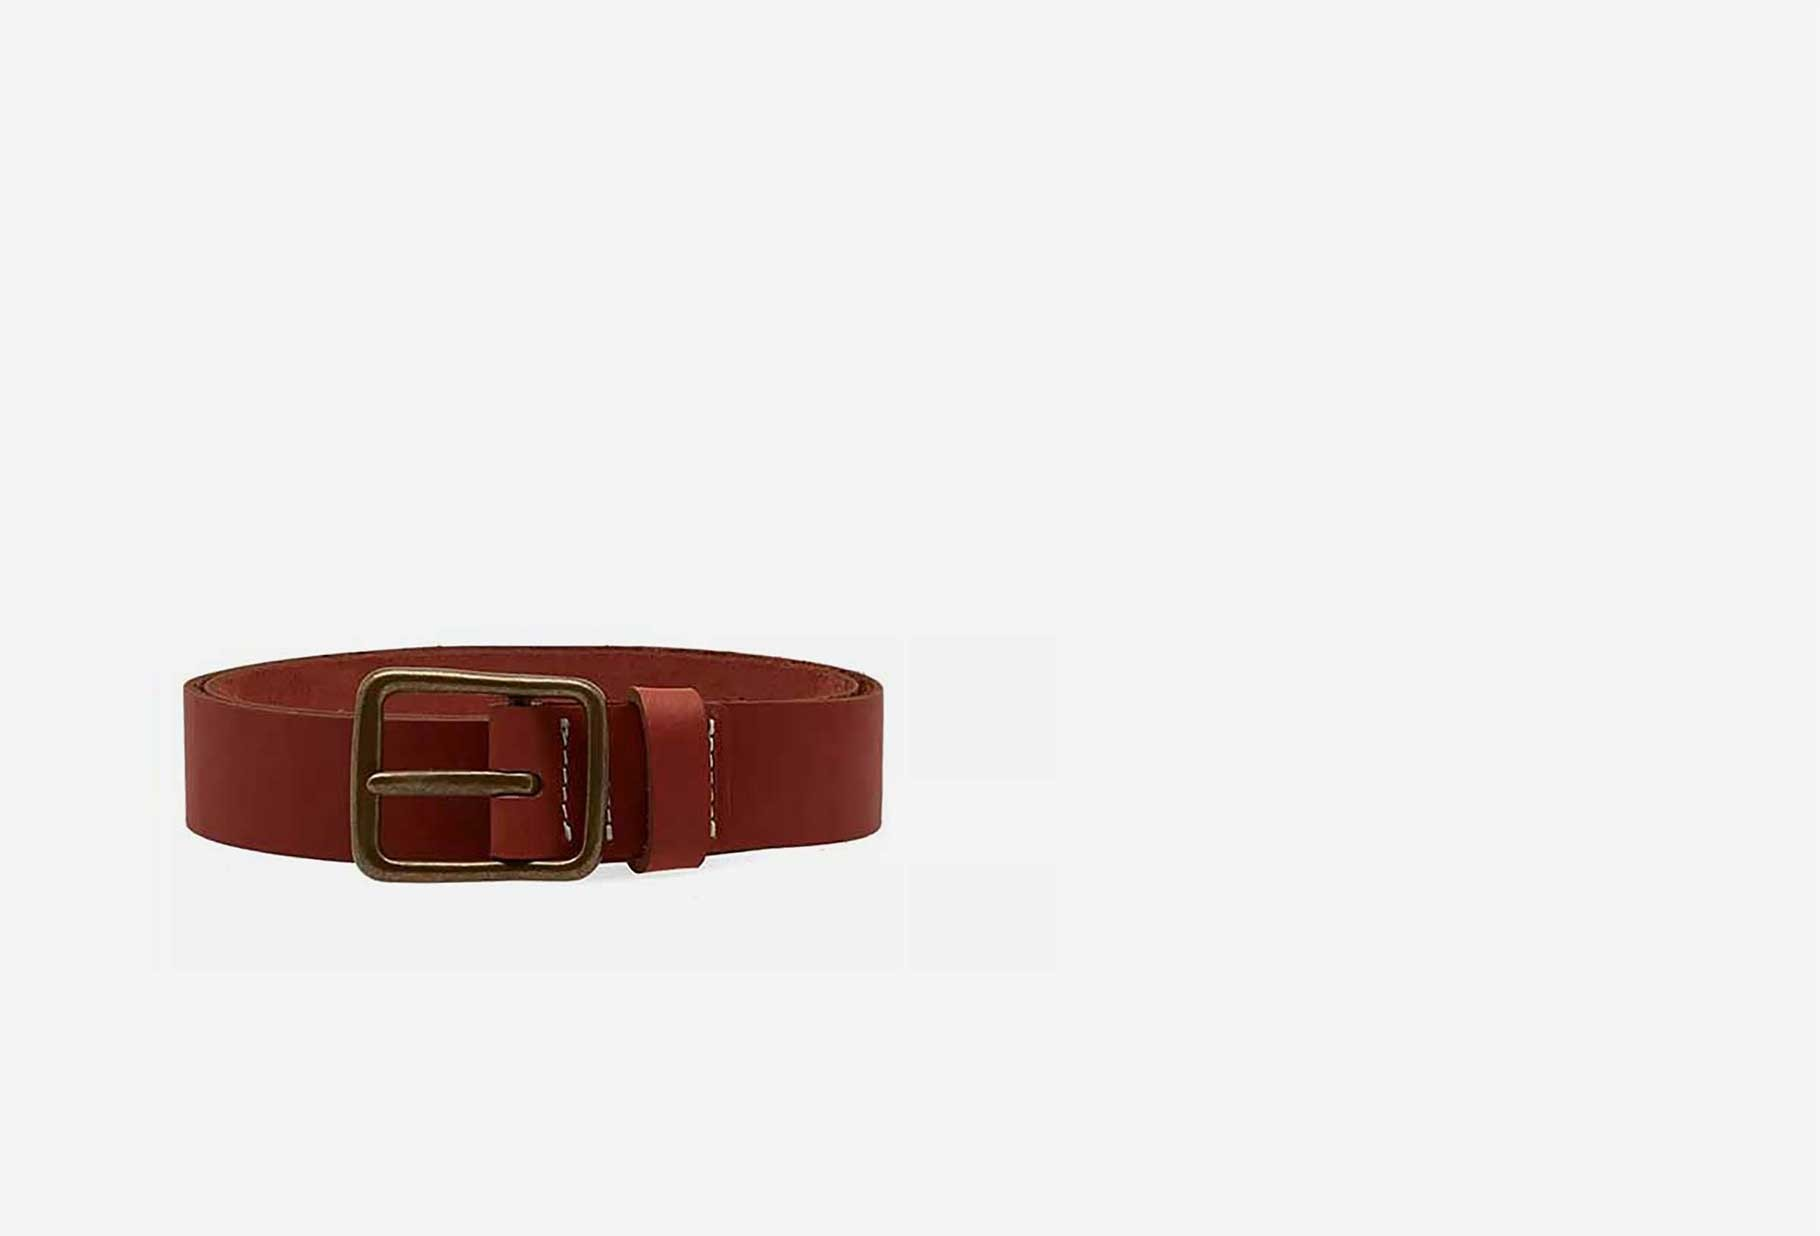 RED WING / Pioneer leather belt Style n.96500 russet